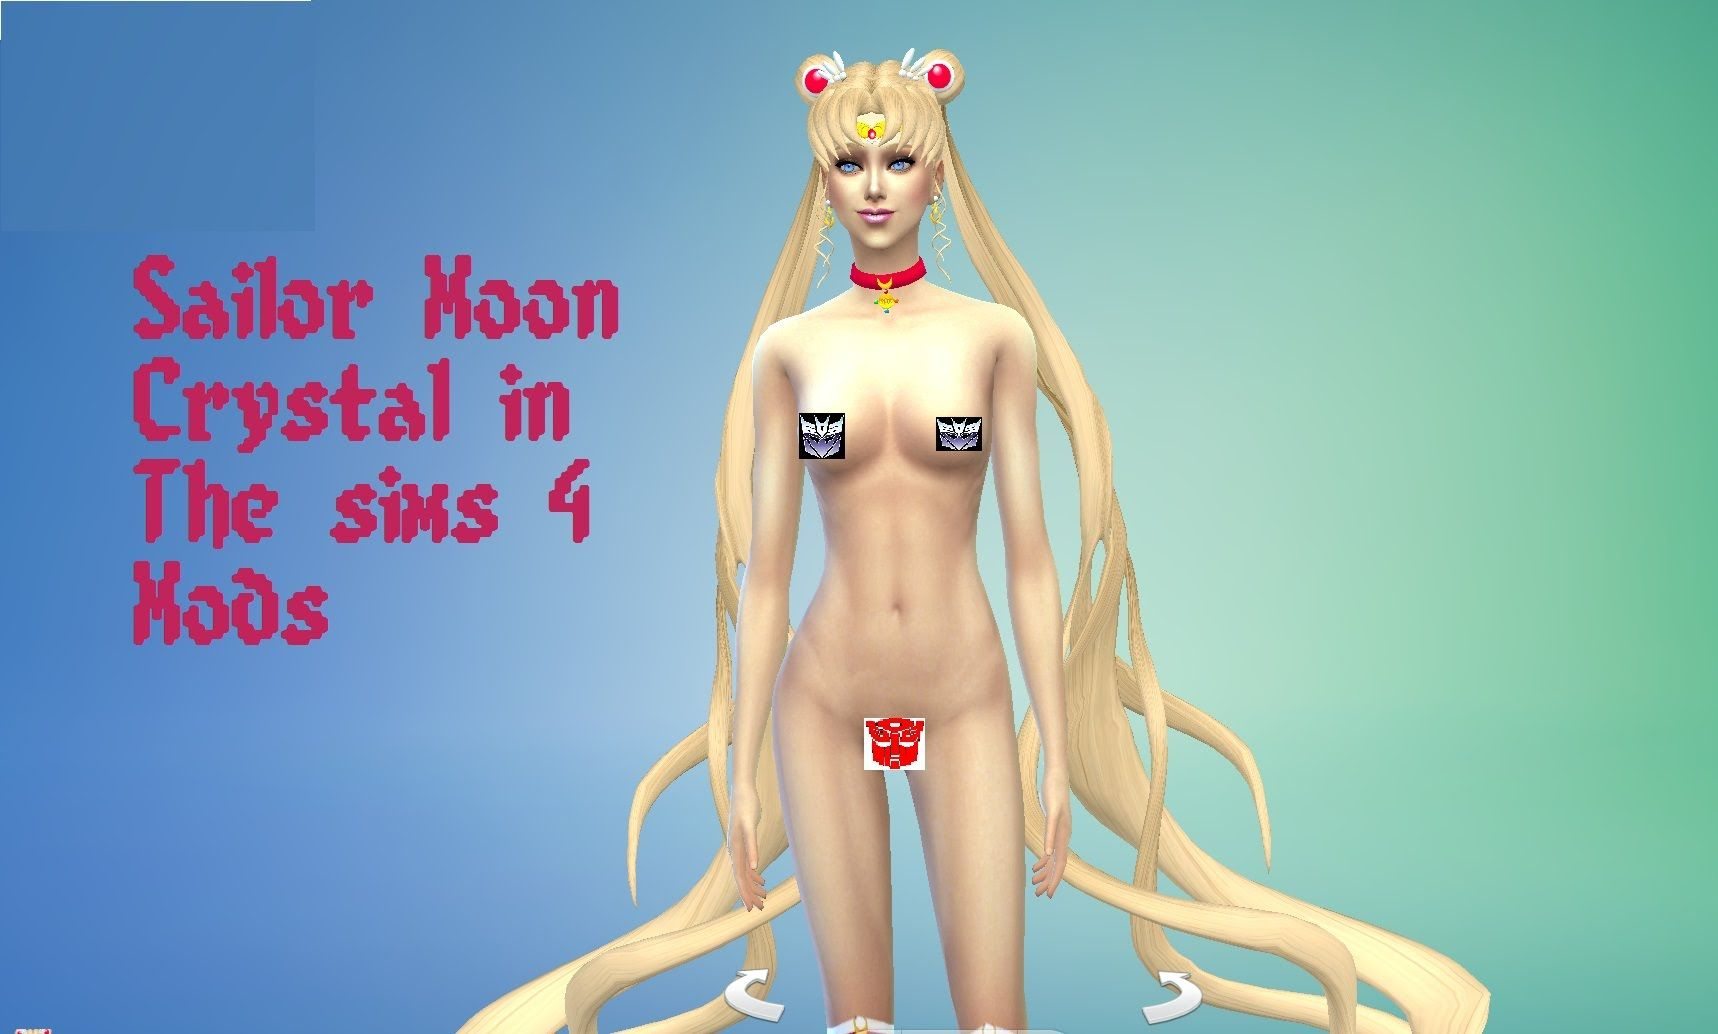 Sims 4 Anime Characters Mod : Sailor moon crystal in the sims mods games pinterest